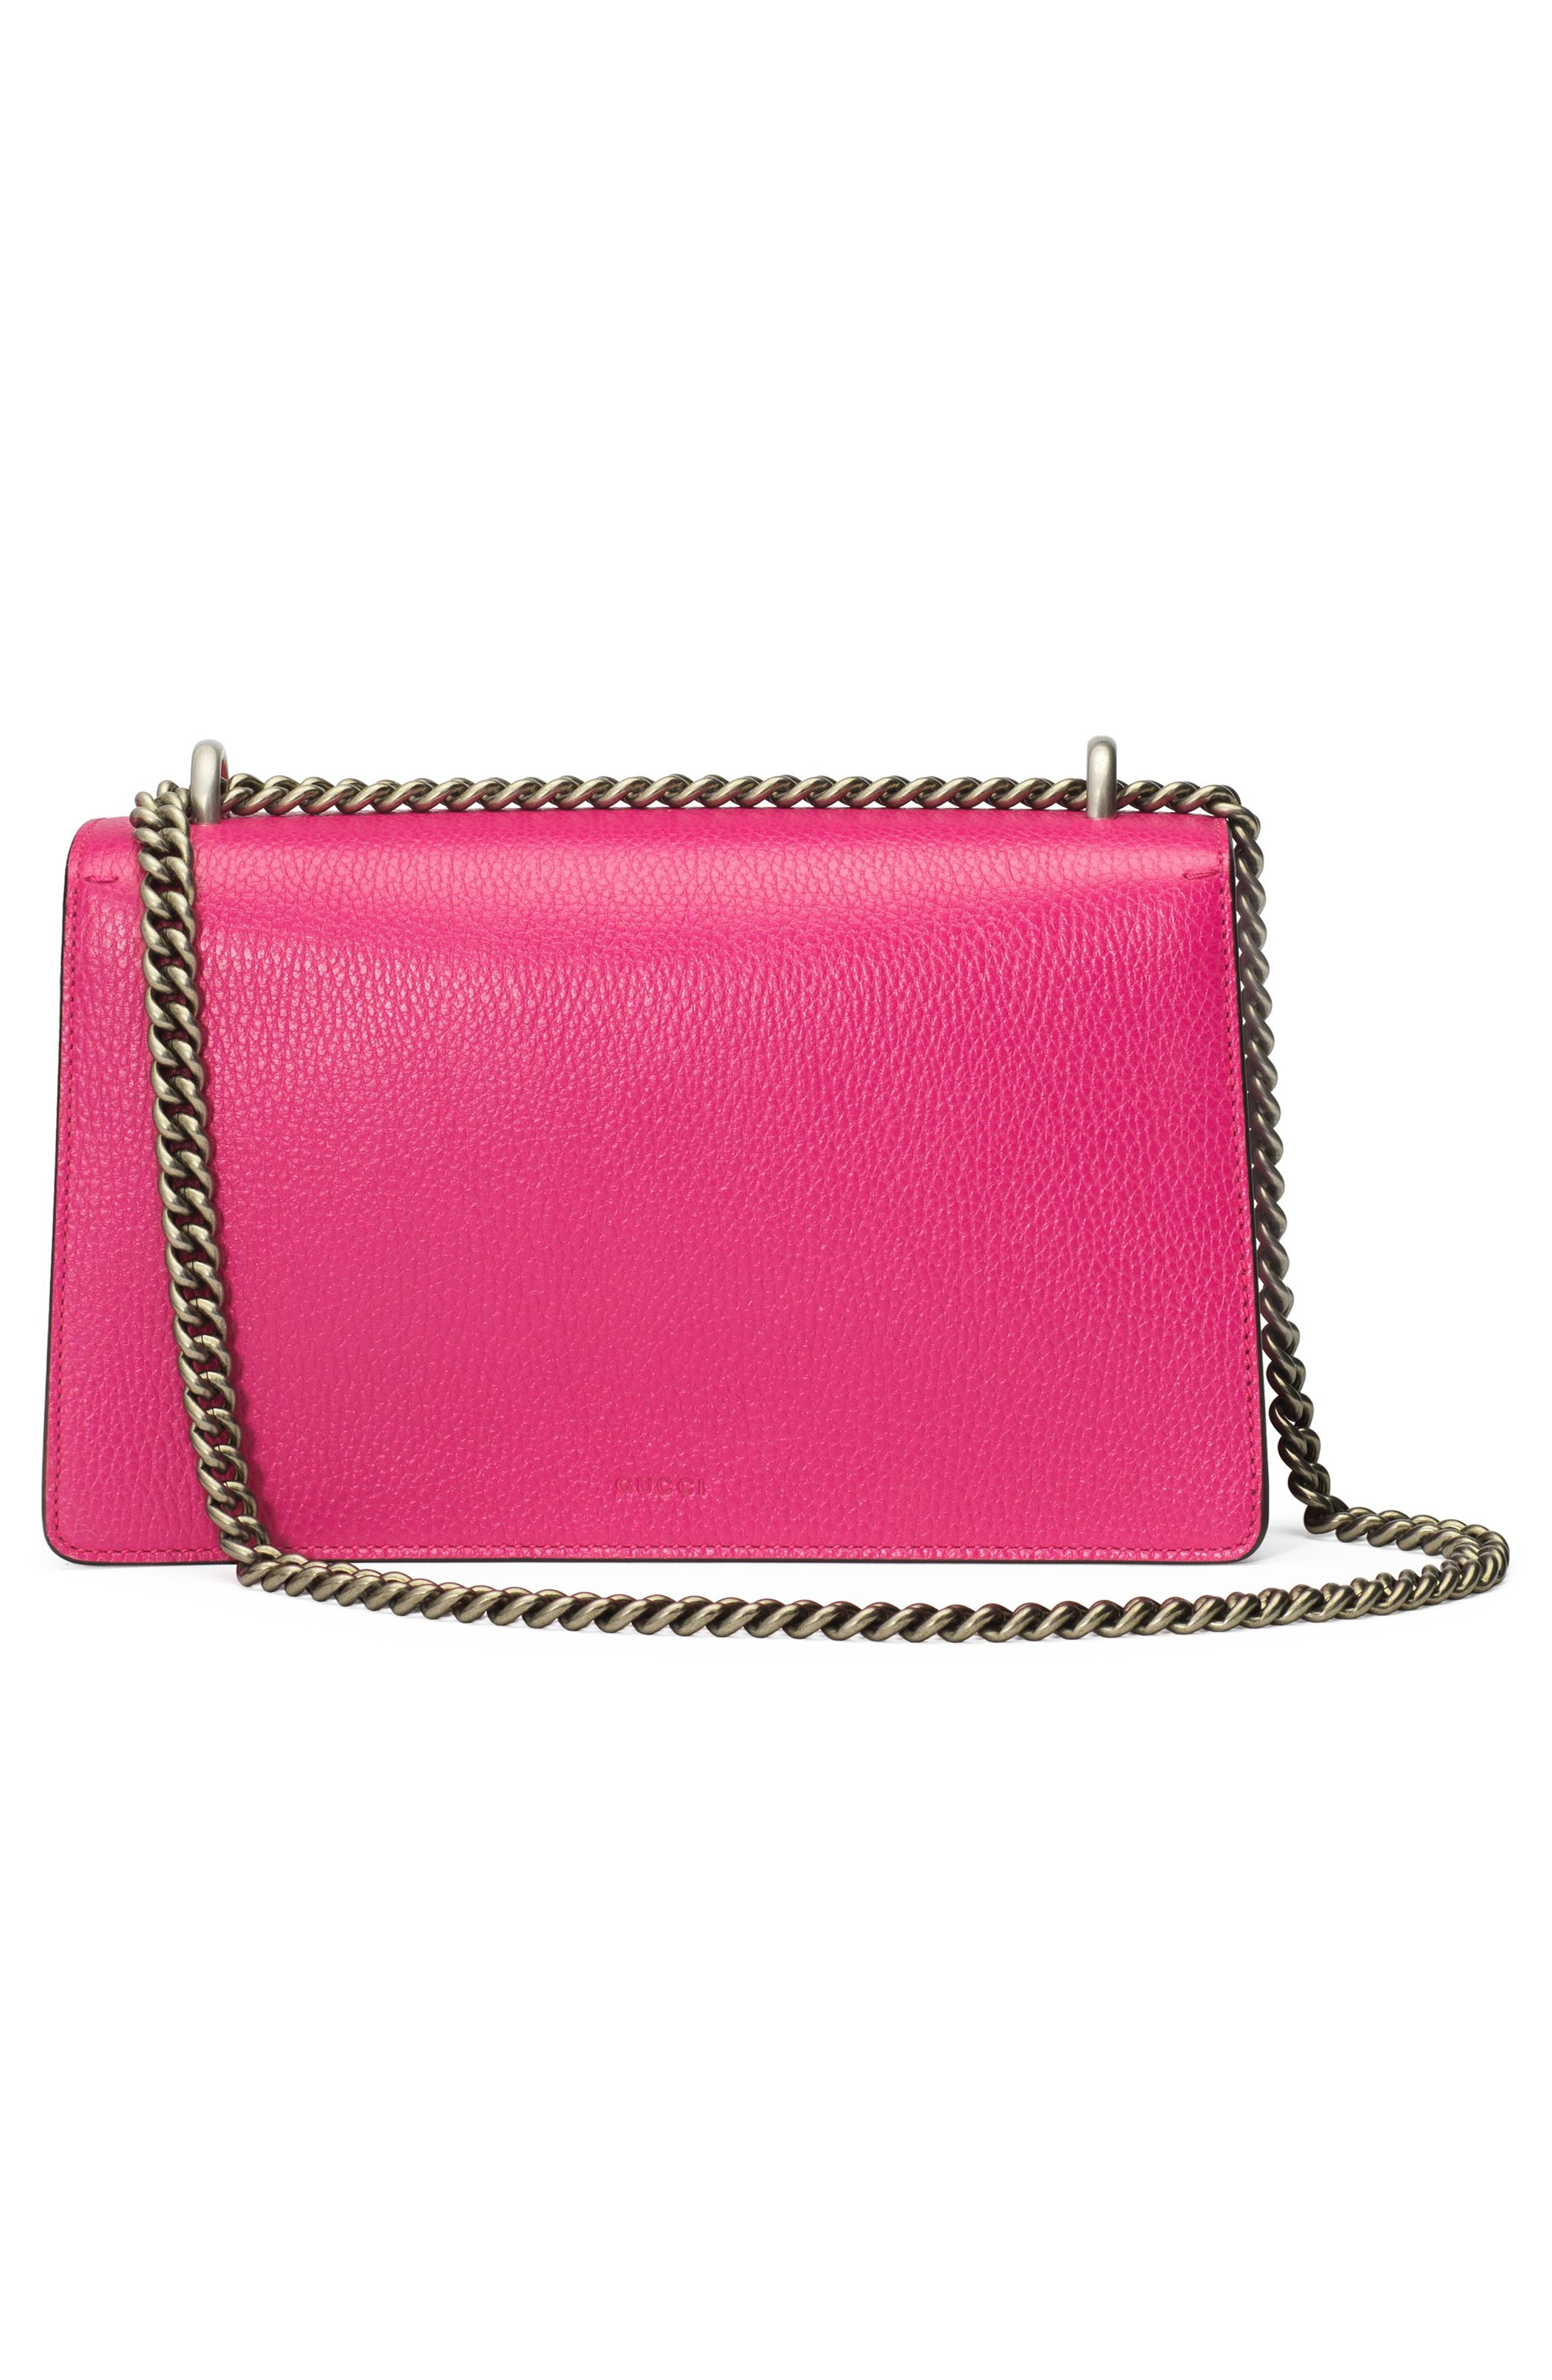 Small Dionysus Guccify Shoulder Bag,                             Alternate thumbnail 2, color,                             BOX PINK/ BLACK DIAMOND/ MULTI